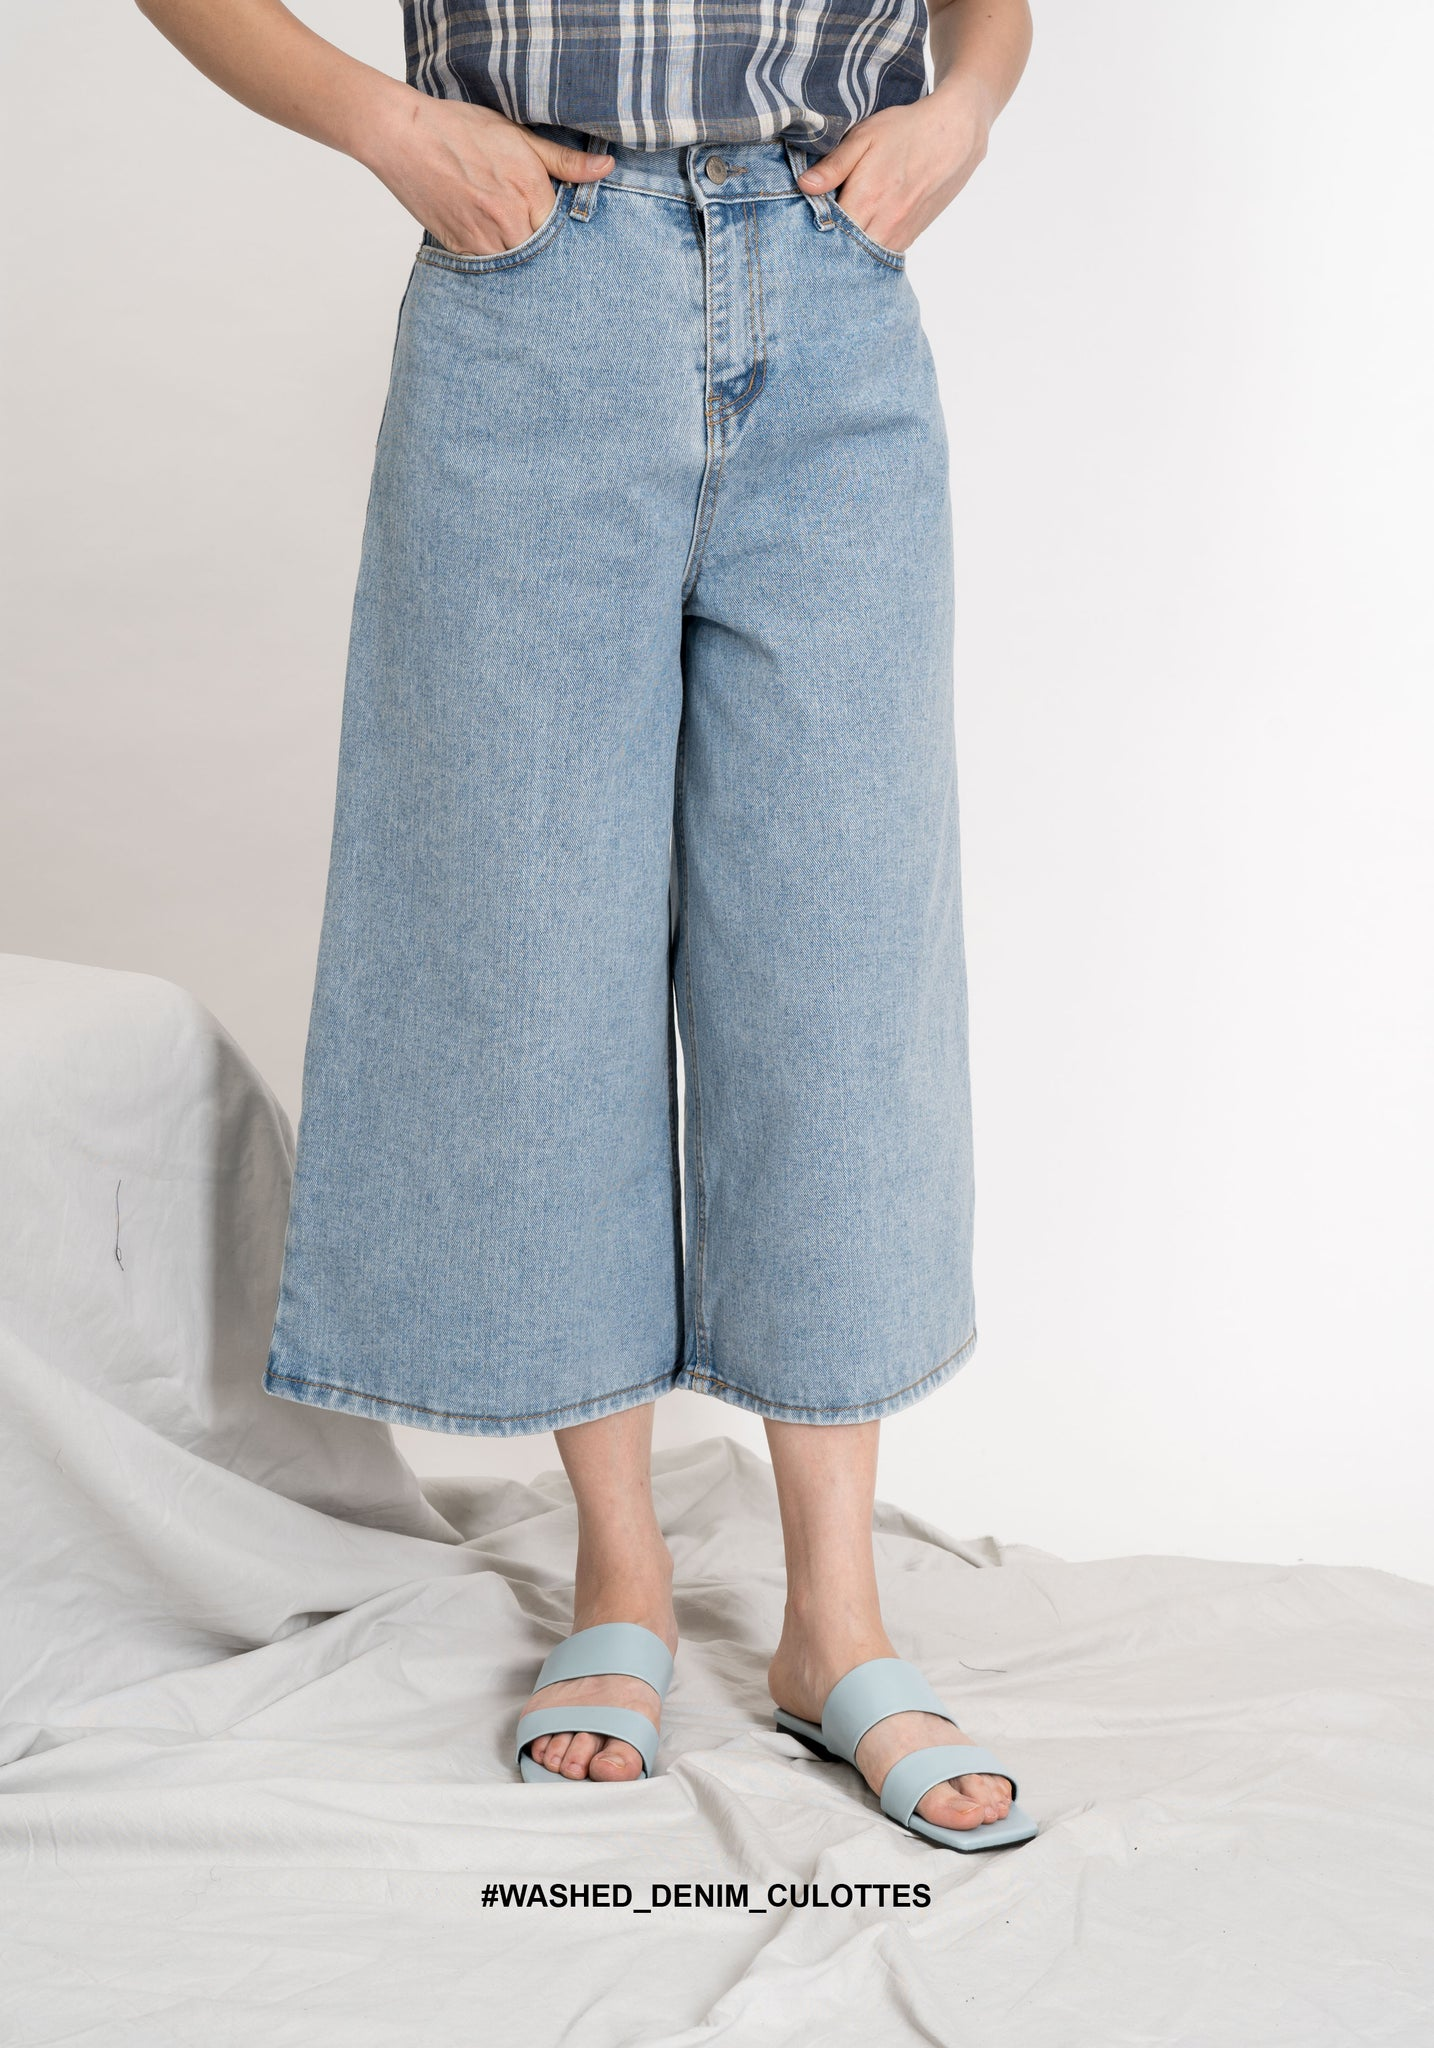 Washed Denim Culottes - whoami